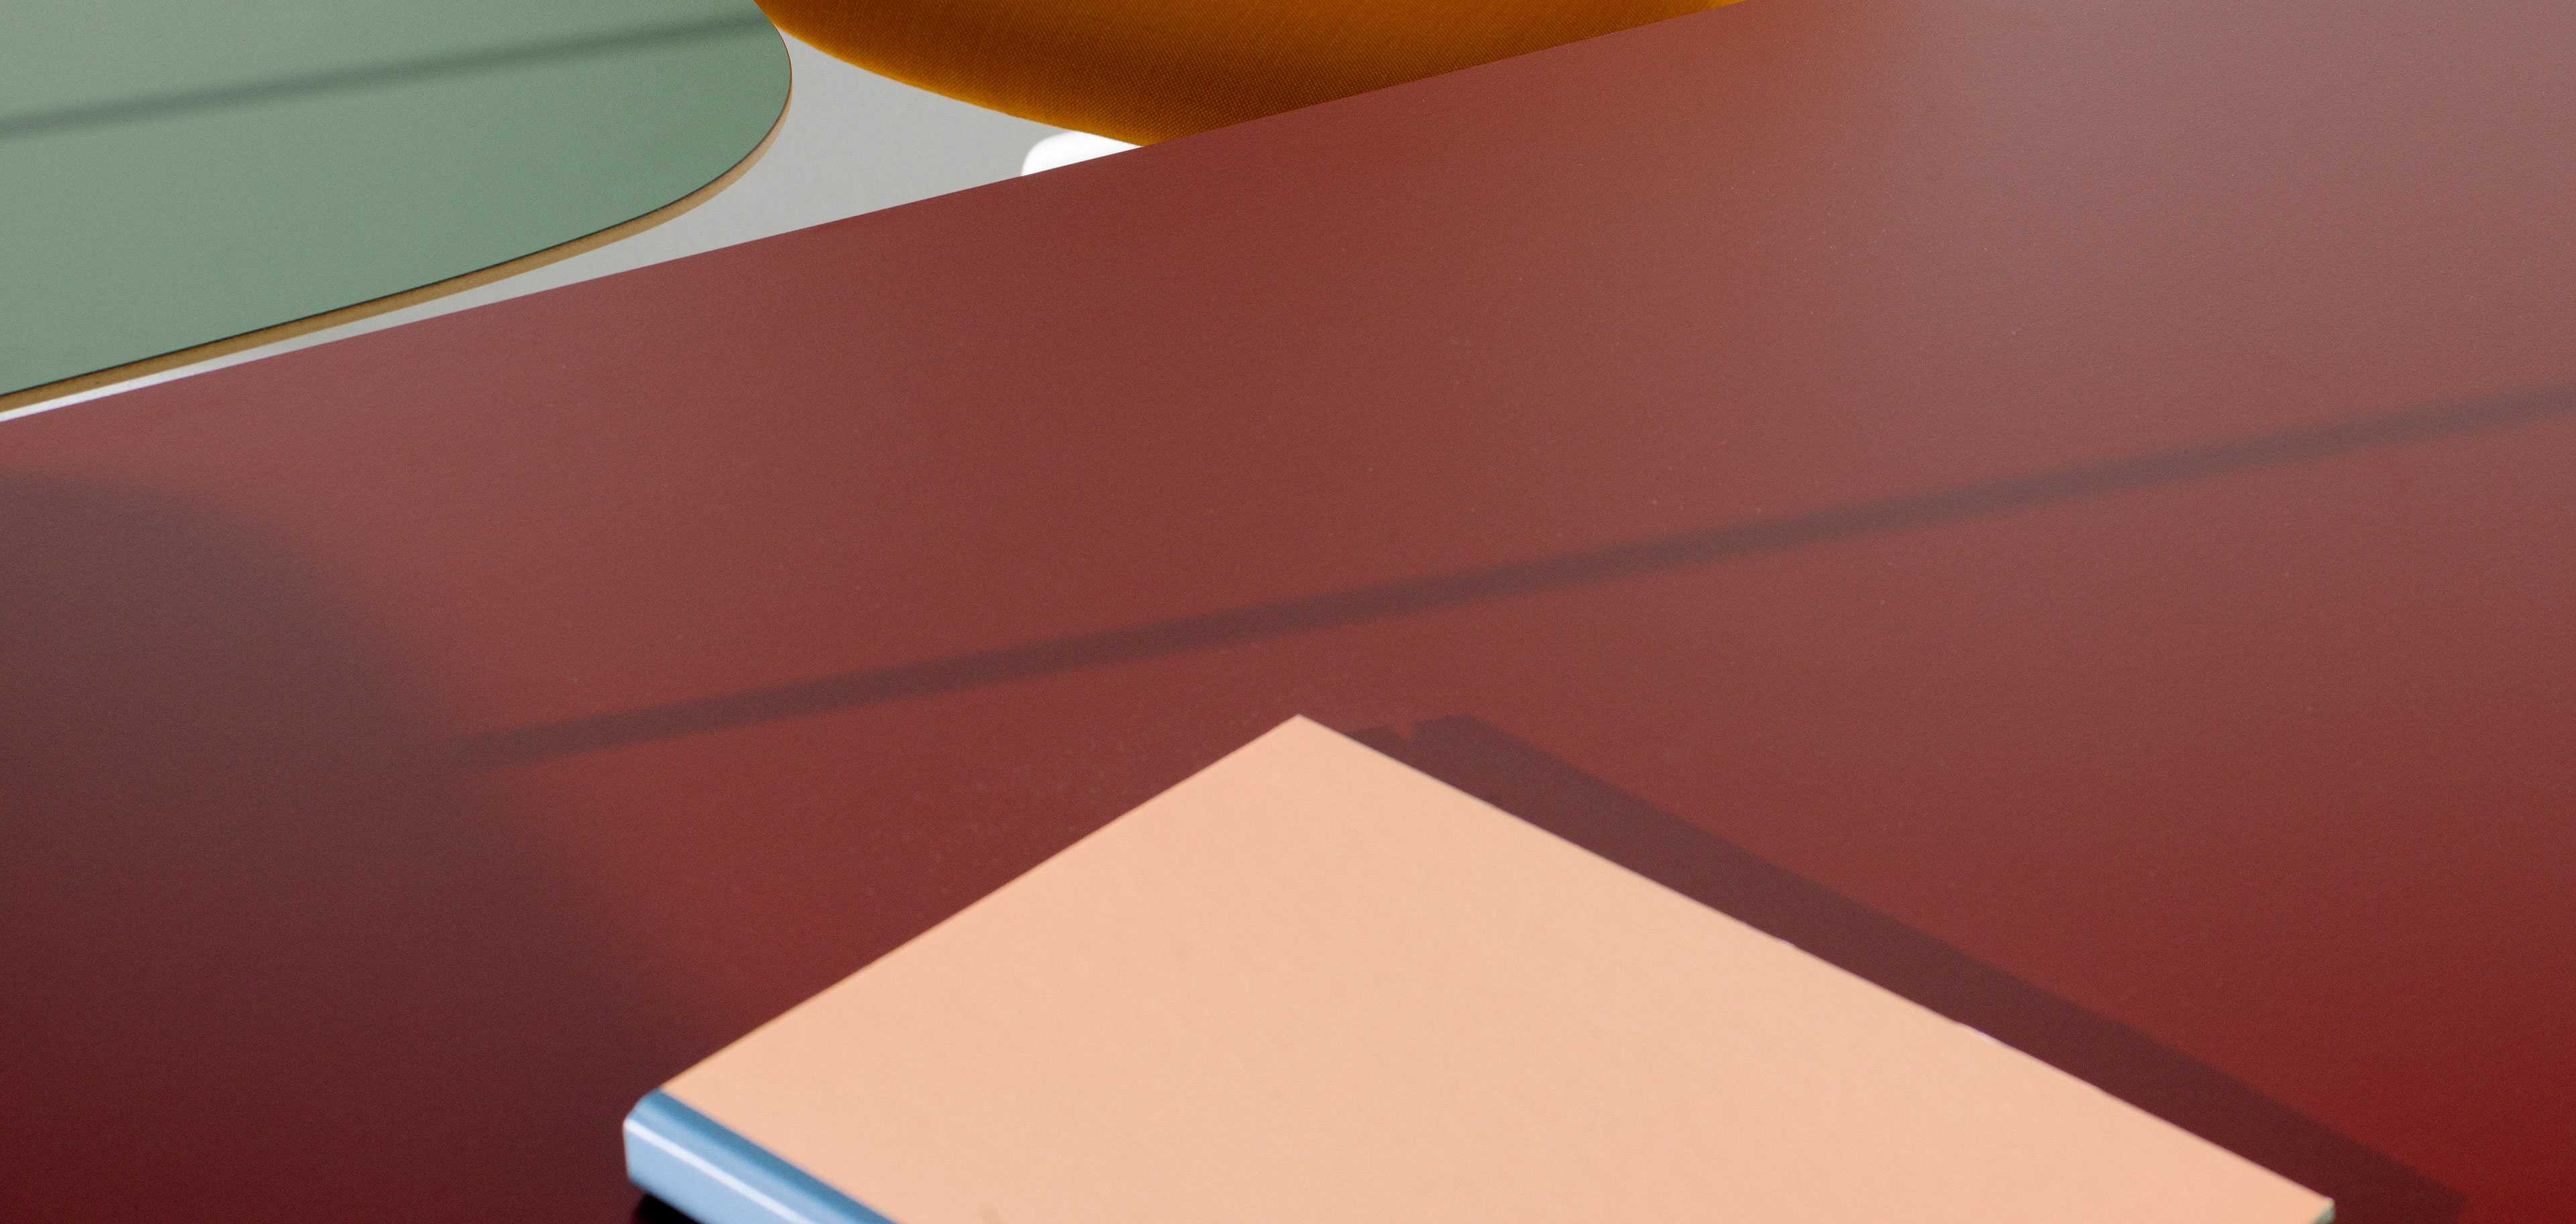 Colourful surfaces